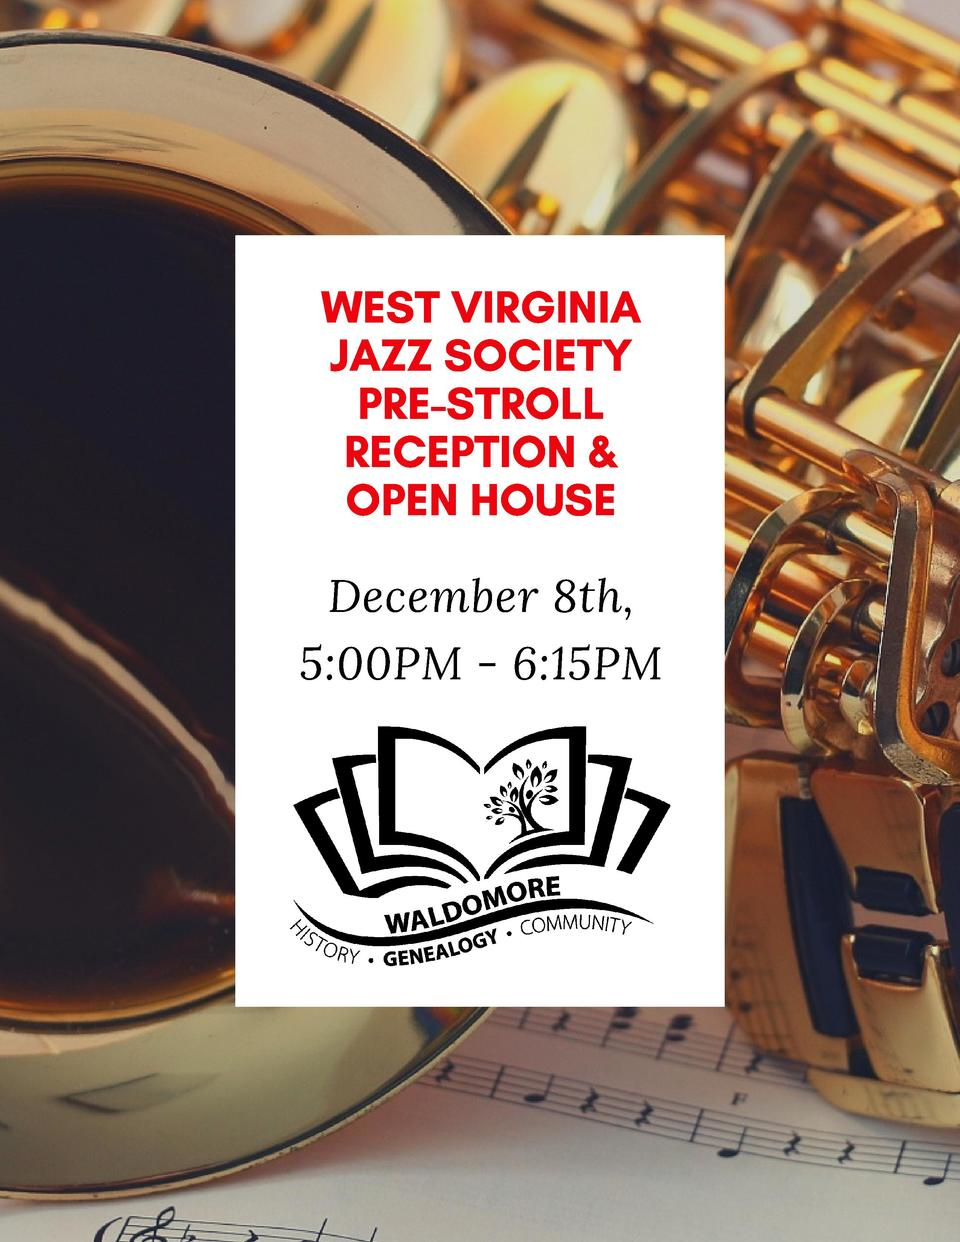 WEST VIRGINIA JAZZ SOCIETY PRE-STROLL RECEPTION   OPEN HOUSE December 8th, 5 00PM - 6 15PM